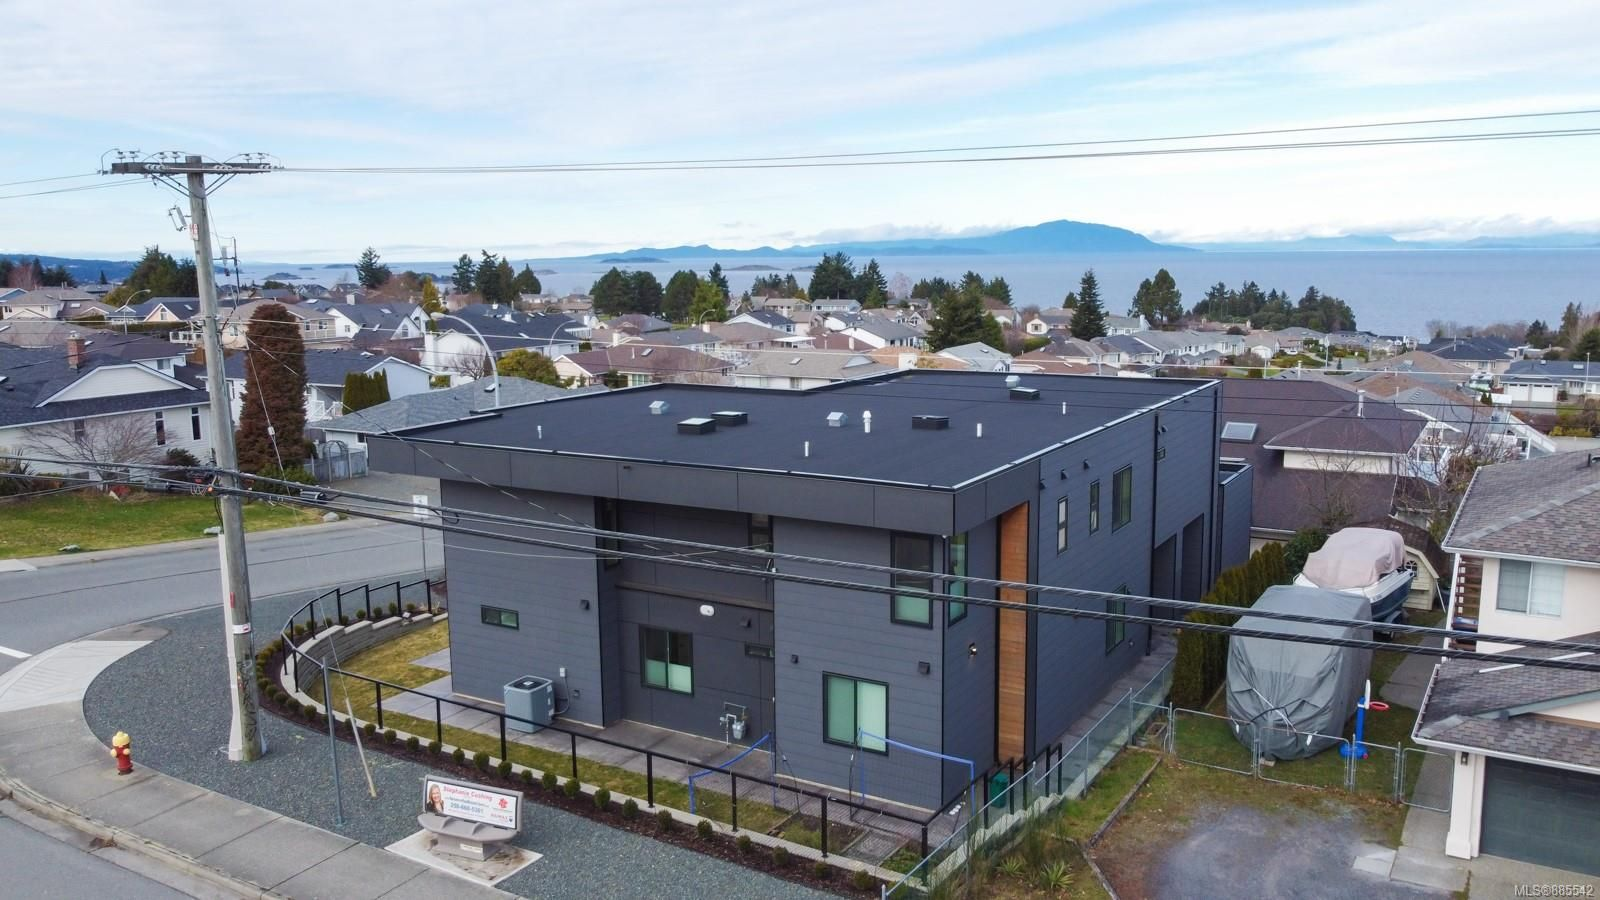 Photo 60: Photos: 6278 Invermere Rd in : Na North Nanaimo House for sale (Nanaimo)  : MLS®# 885542